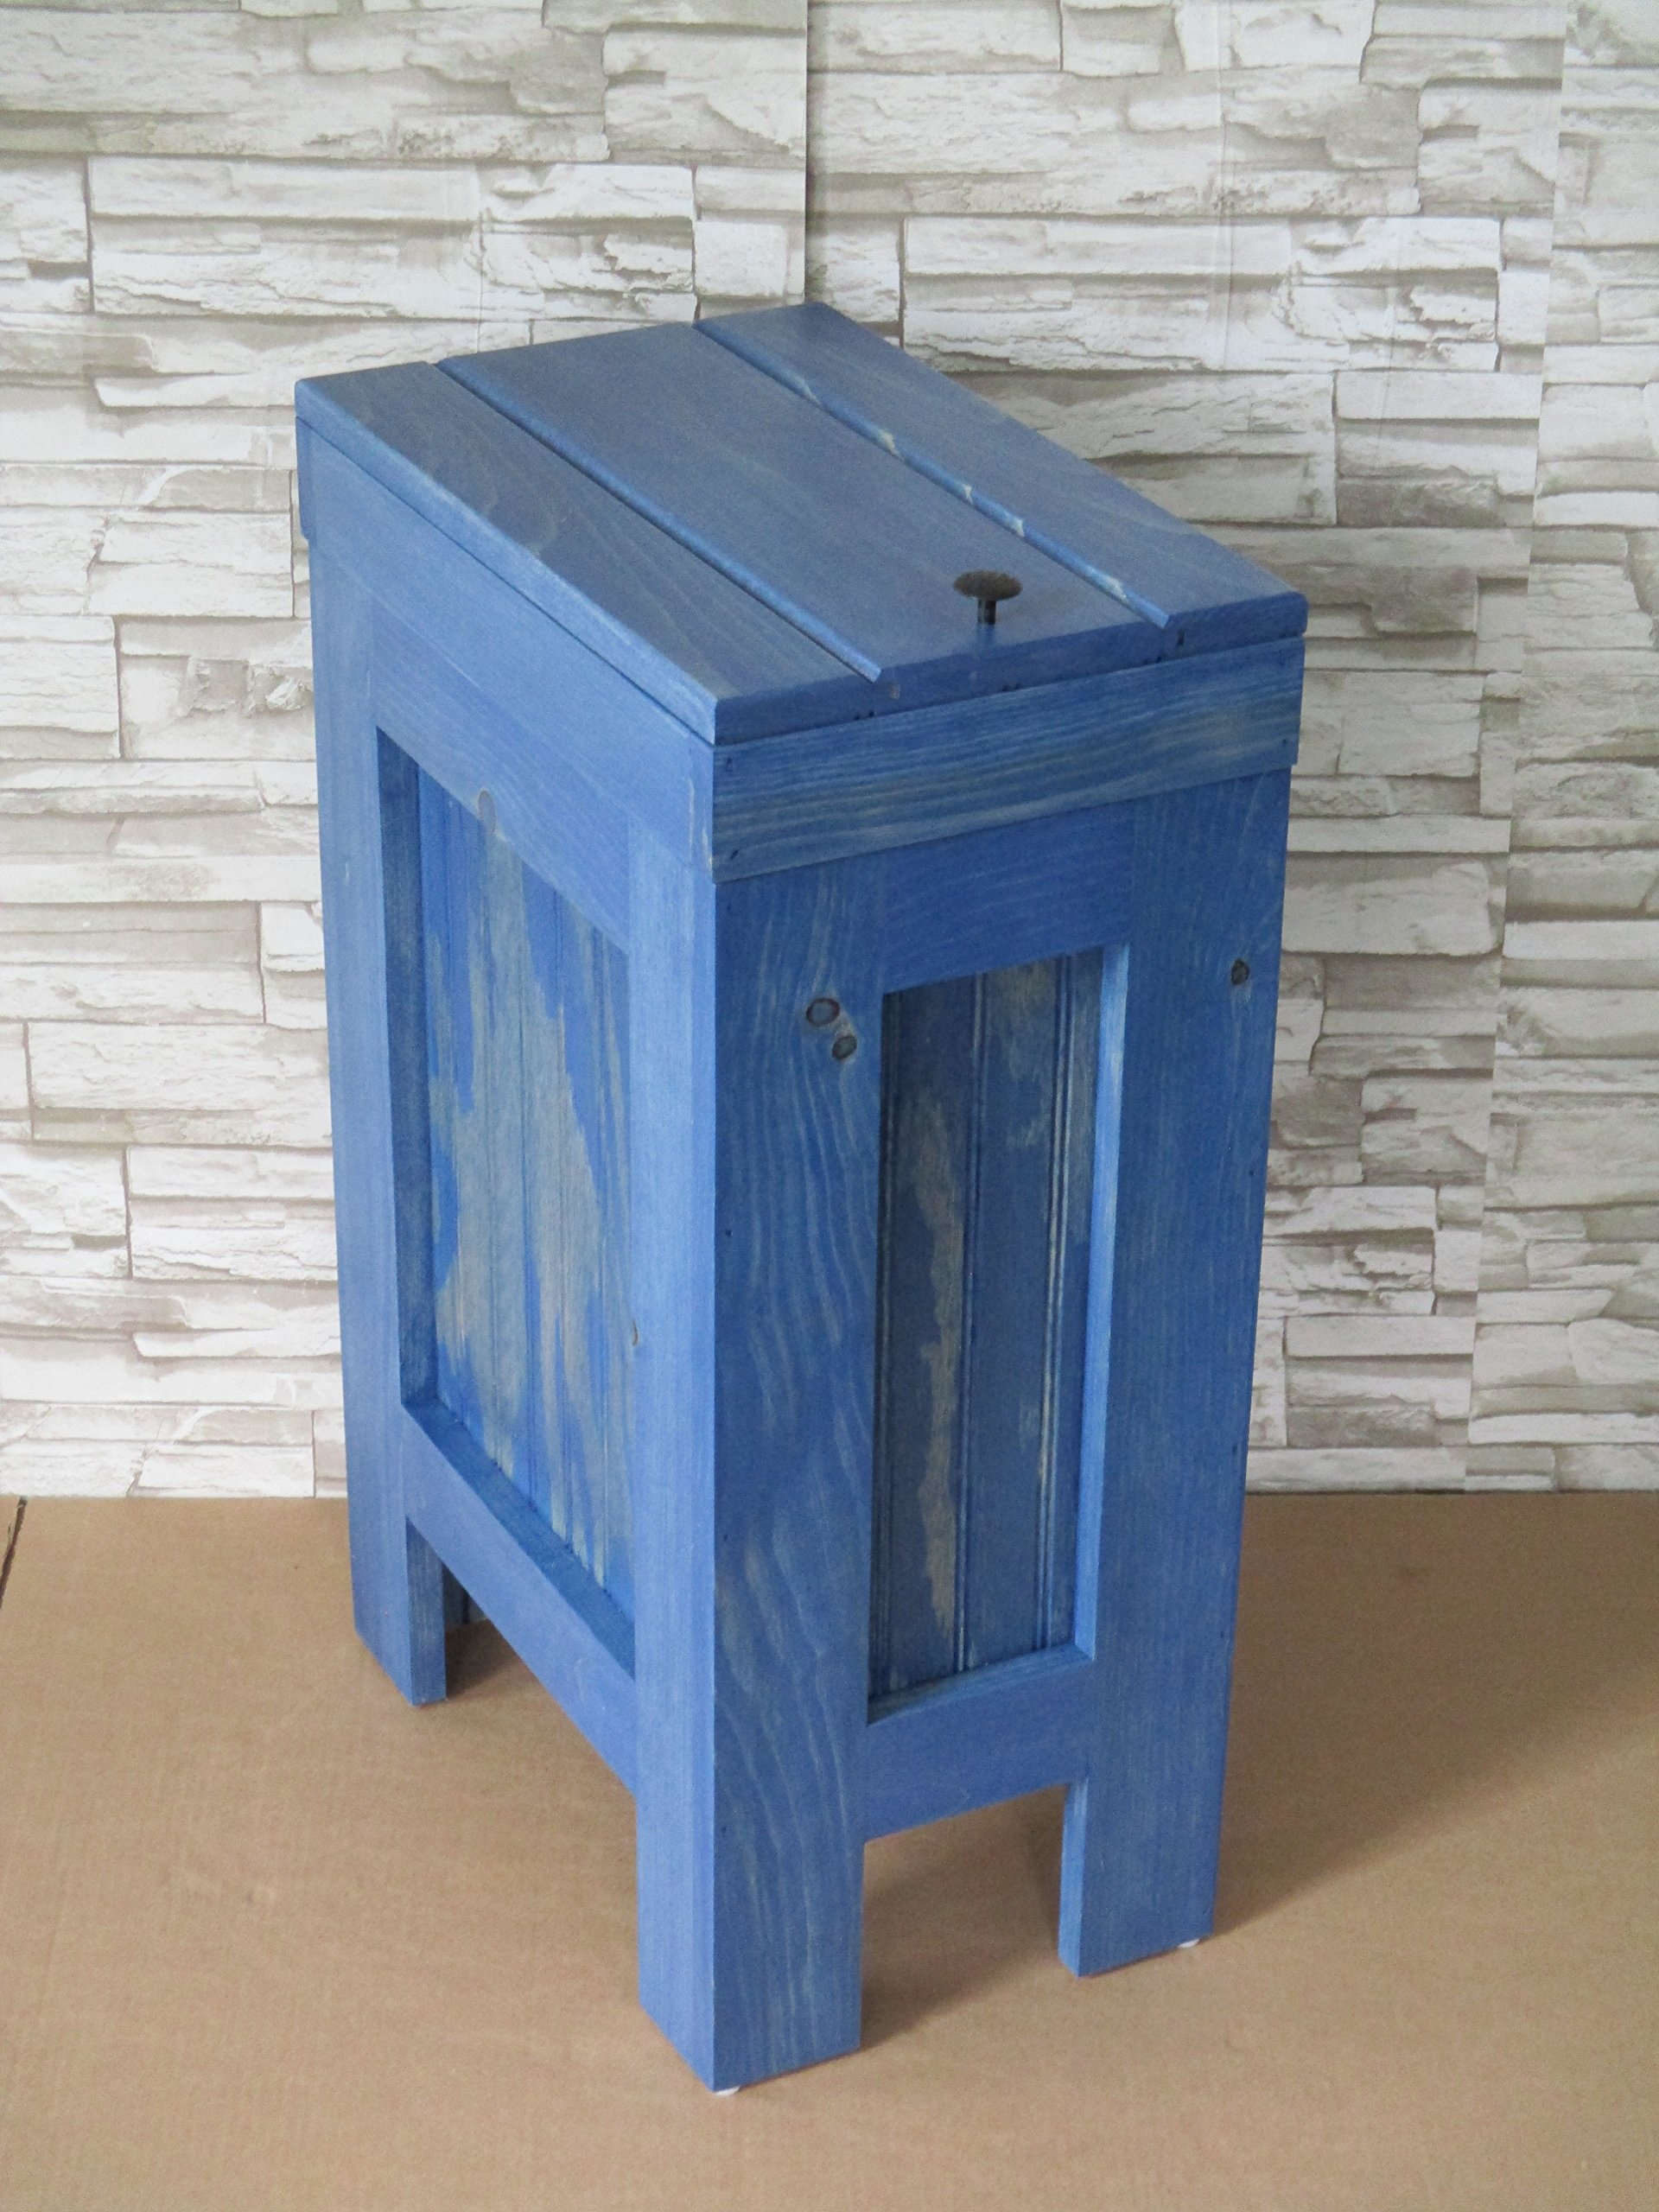 Wood Wooden Trash Bin Kitchen Garbage Can 13 Gallon , Recycle Bin, Dog Food Storage , Island Blue Stain - Pine - Handmade in USA By Buffalowoodshop